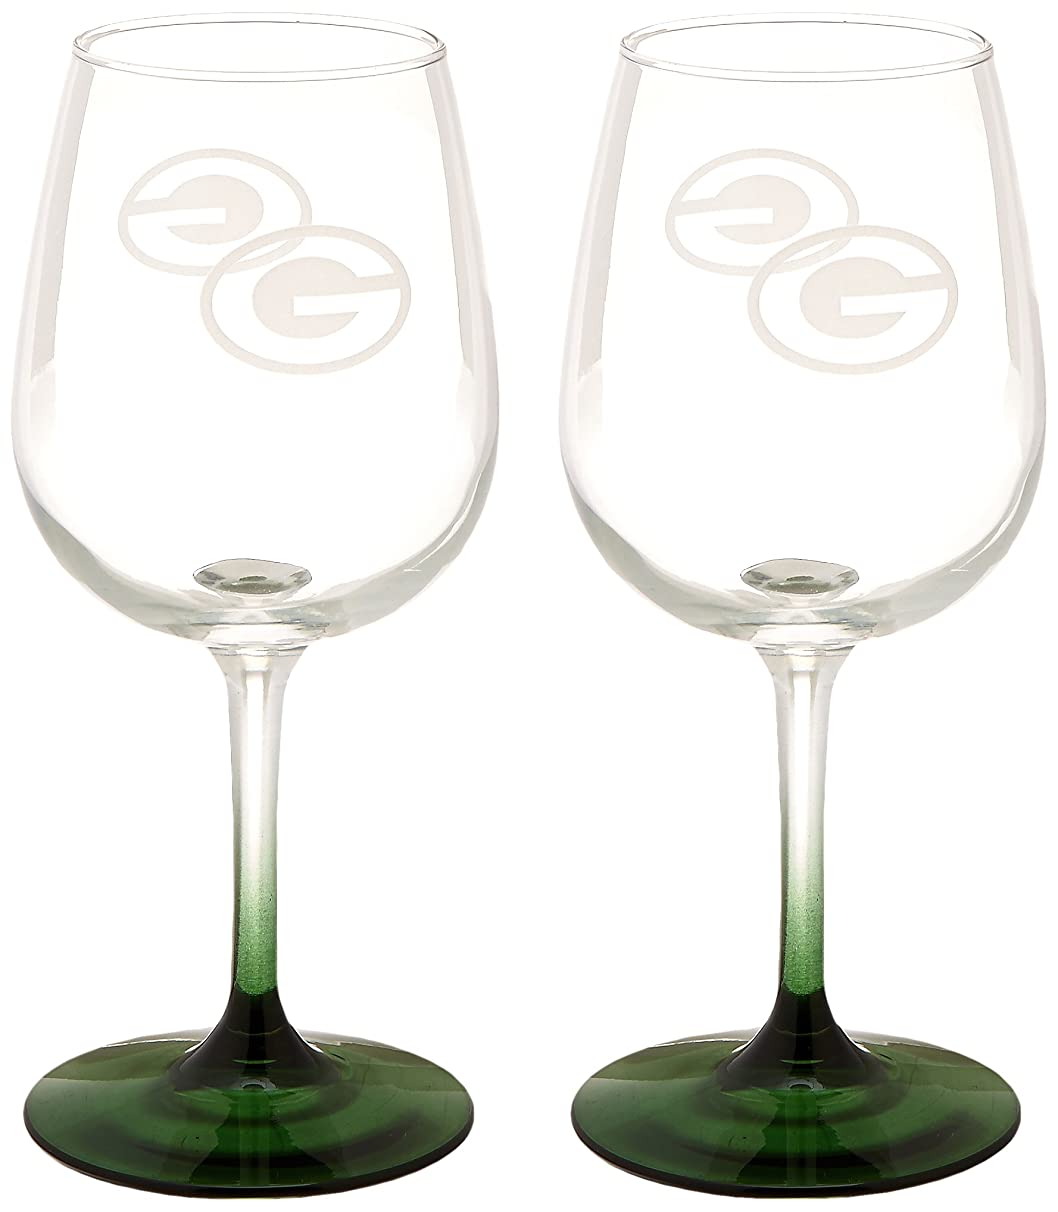 NFL Wine Glass, 12-Ounce, 2-Pack